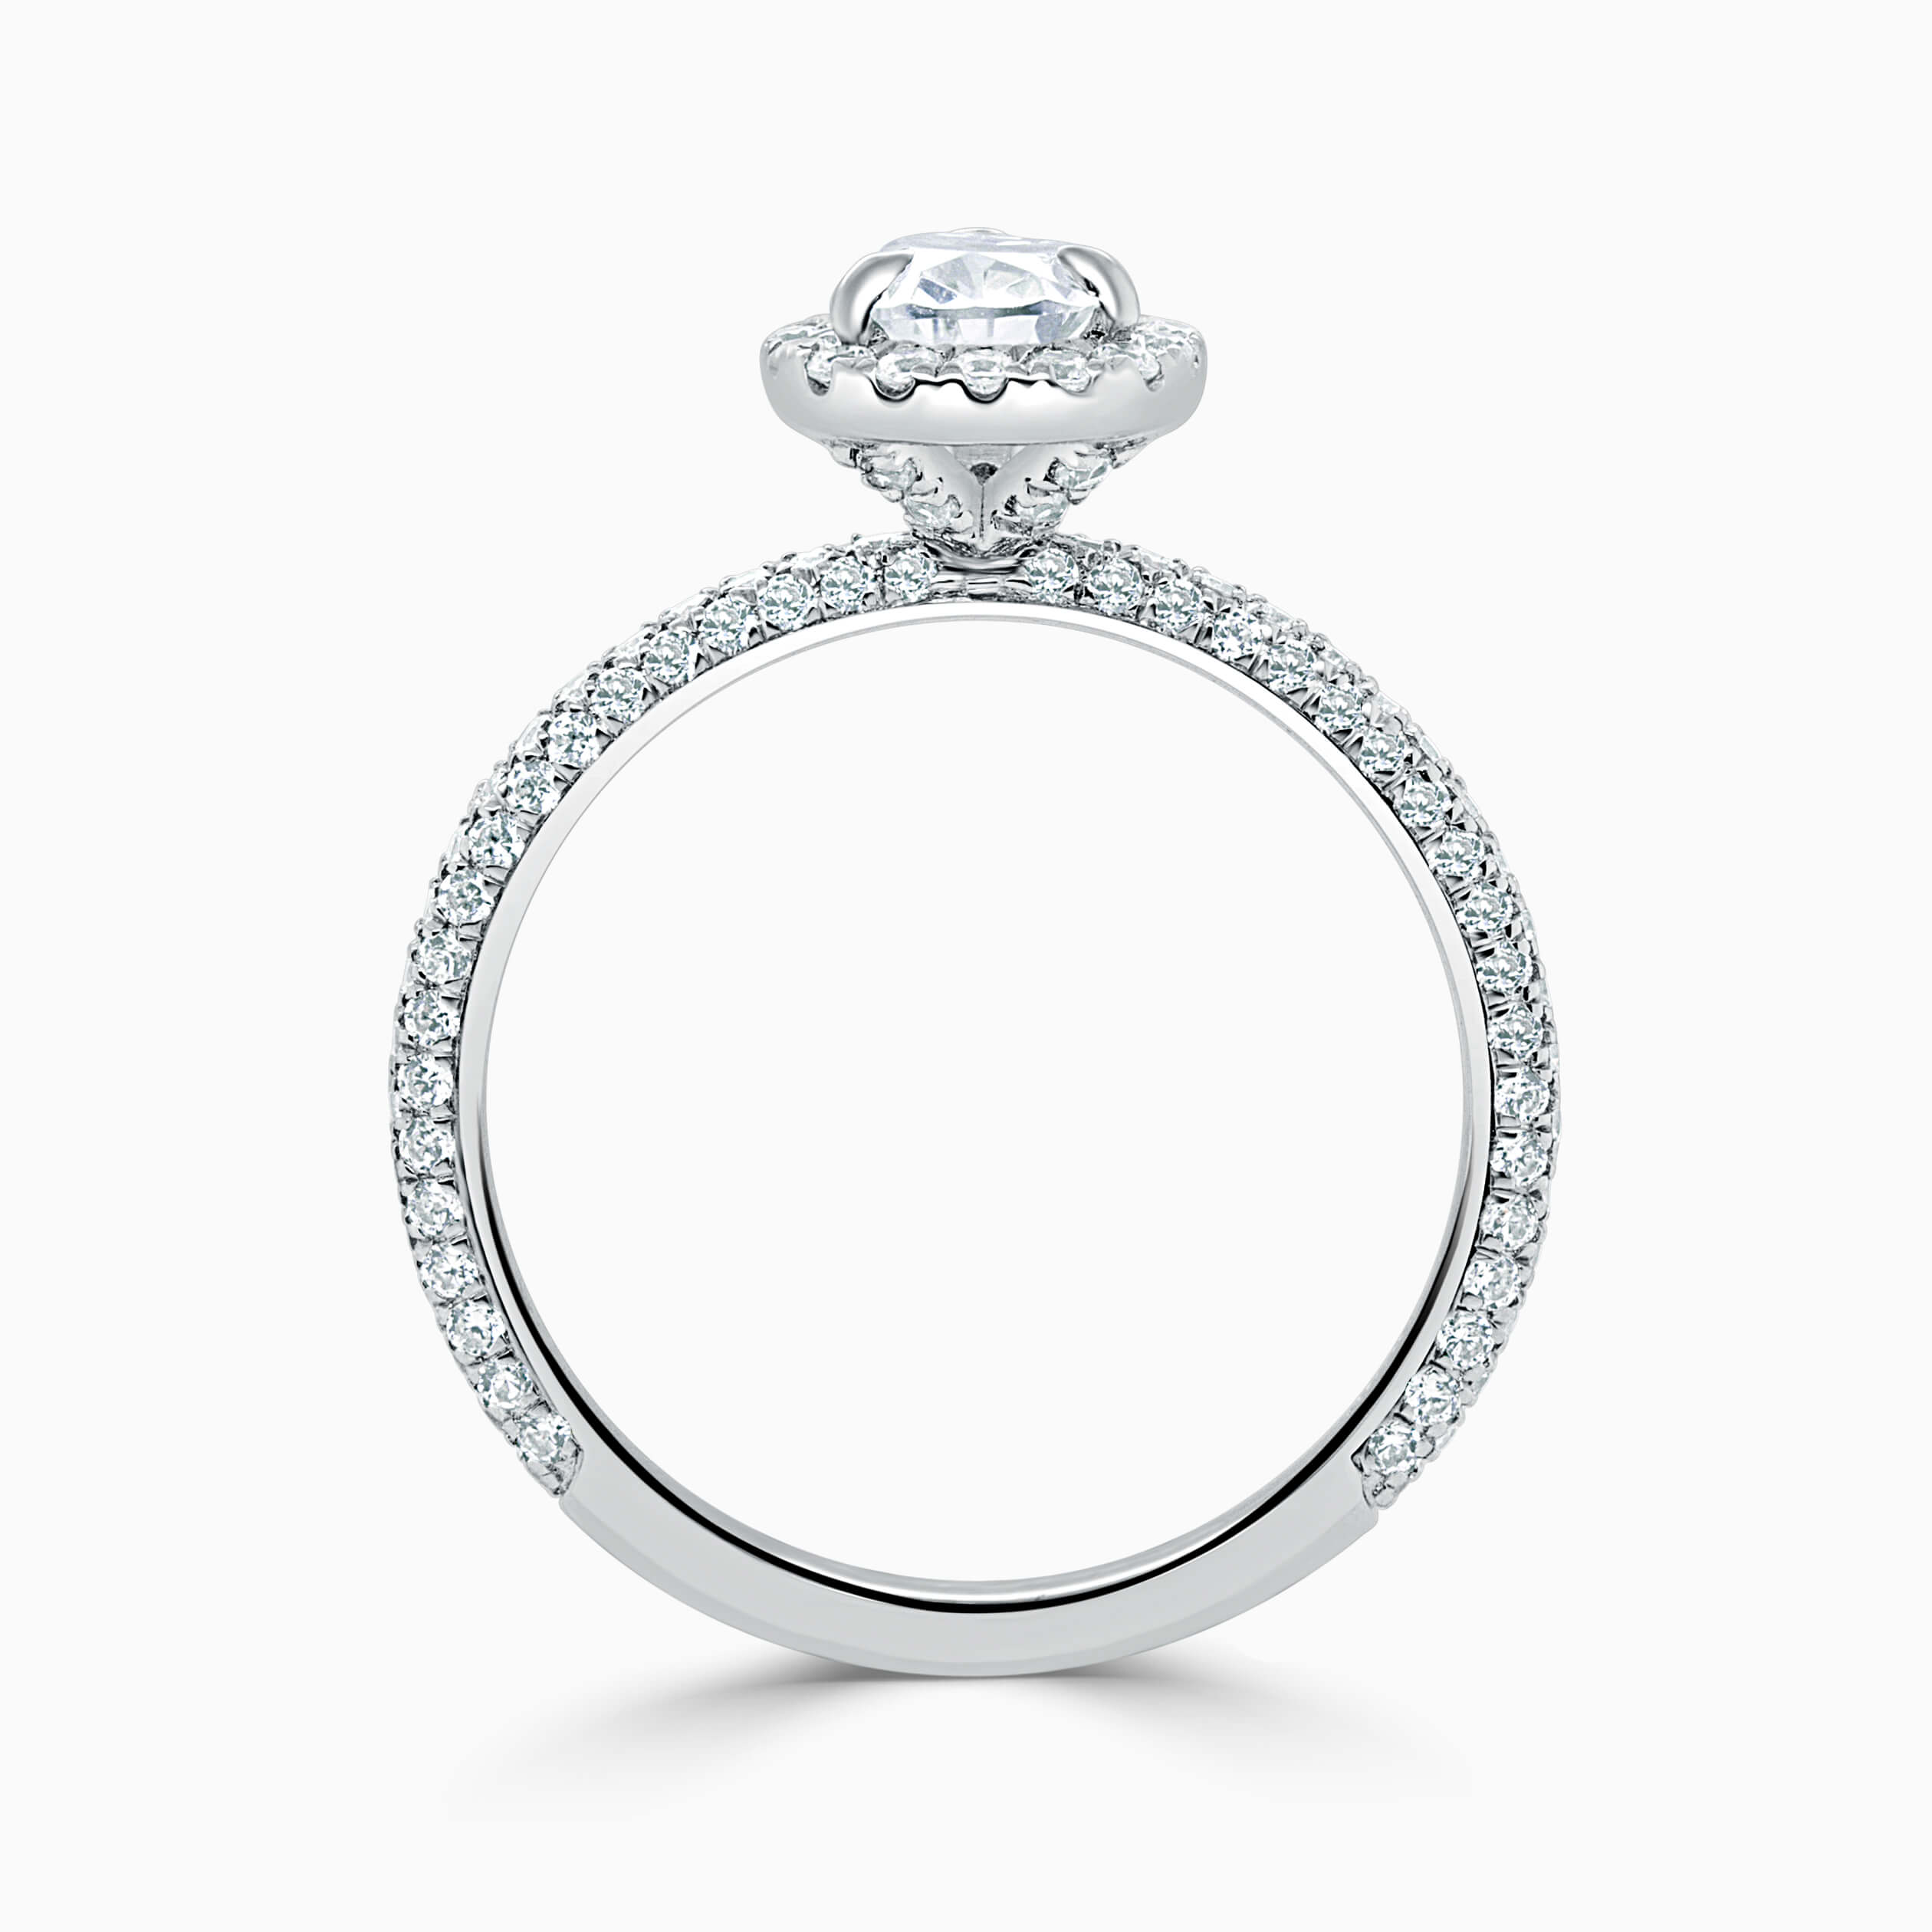 18ct White Gold Pear Shape Halo With Micro Pave Engagement Ring